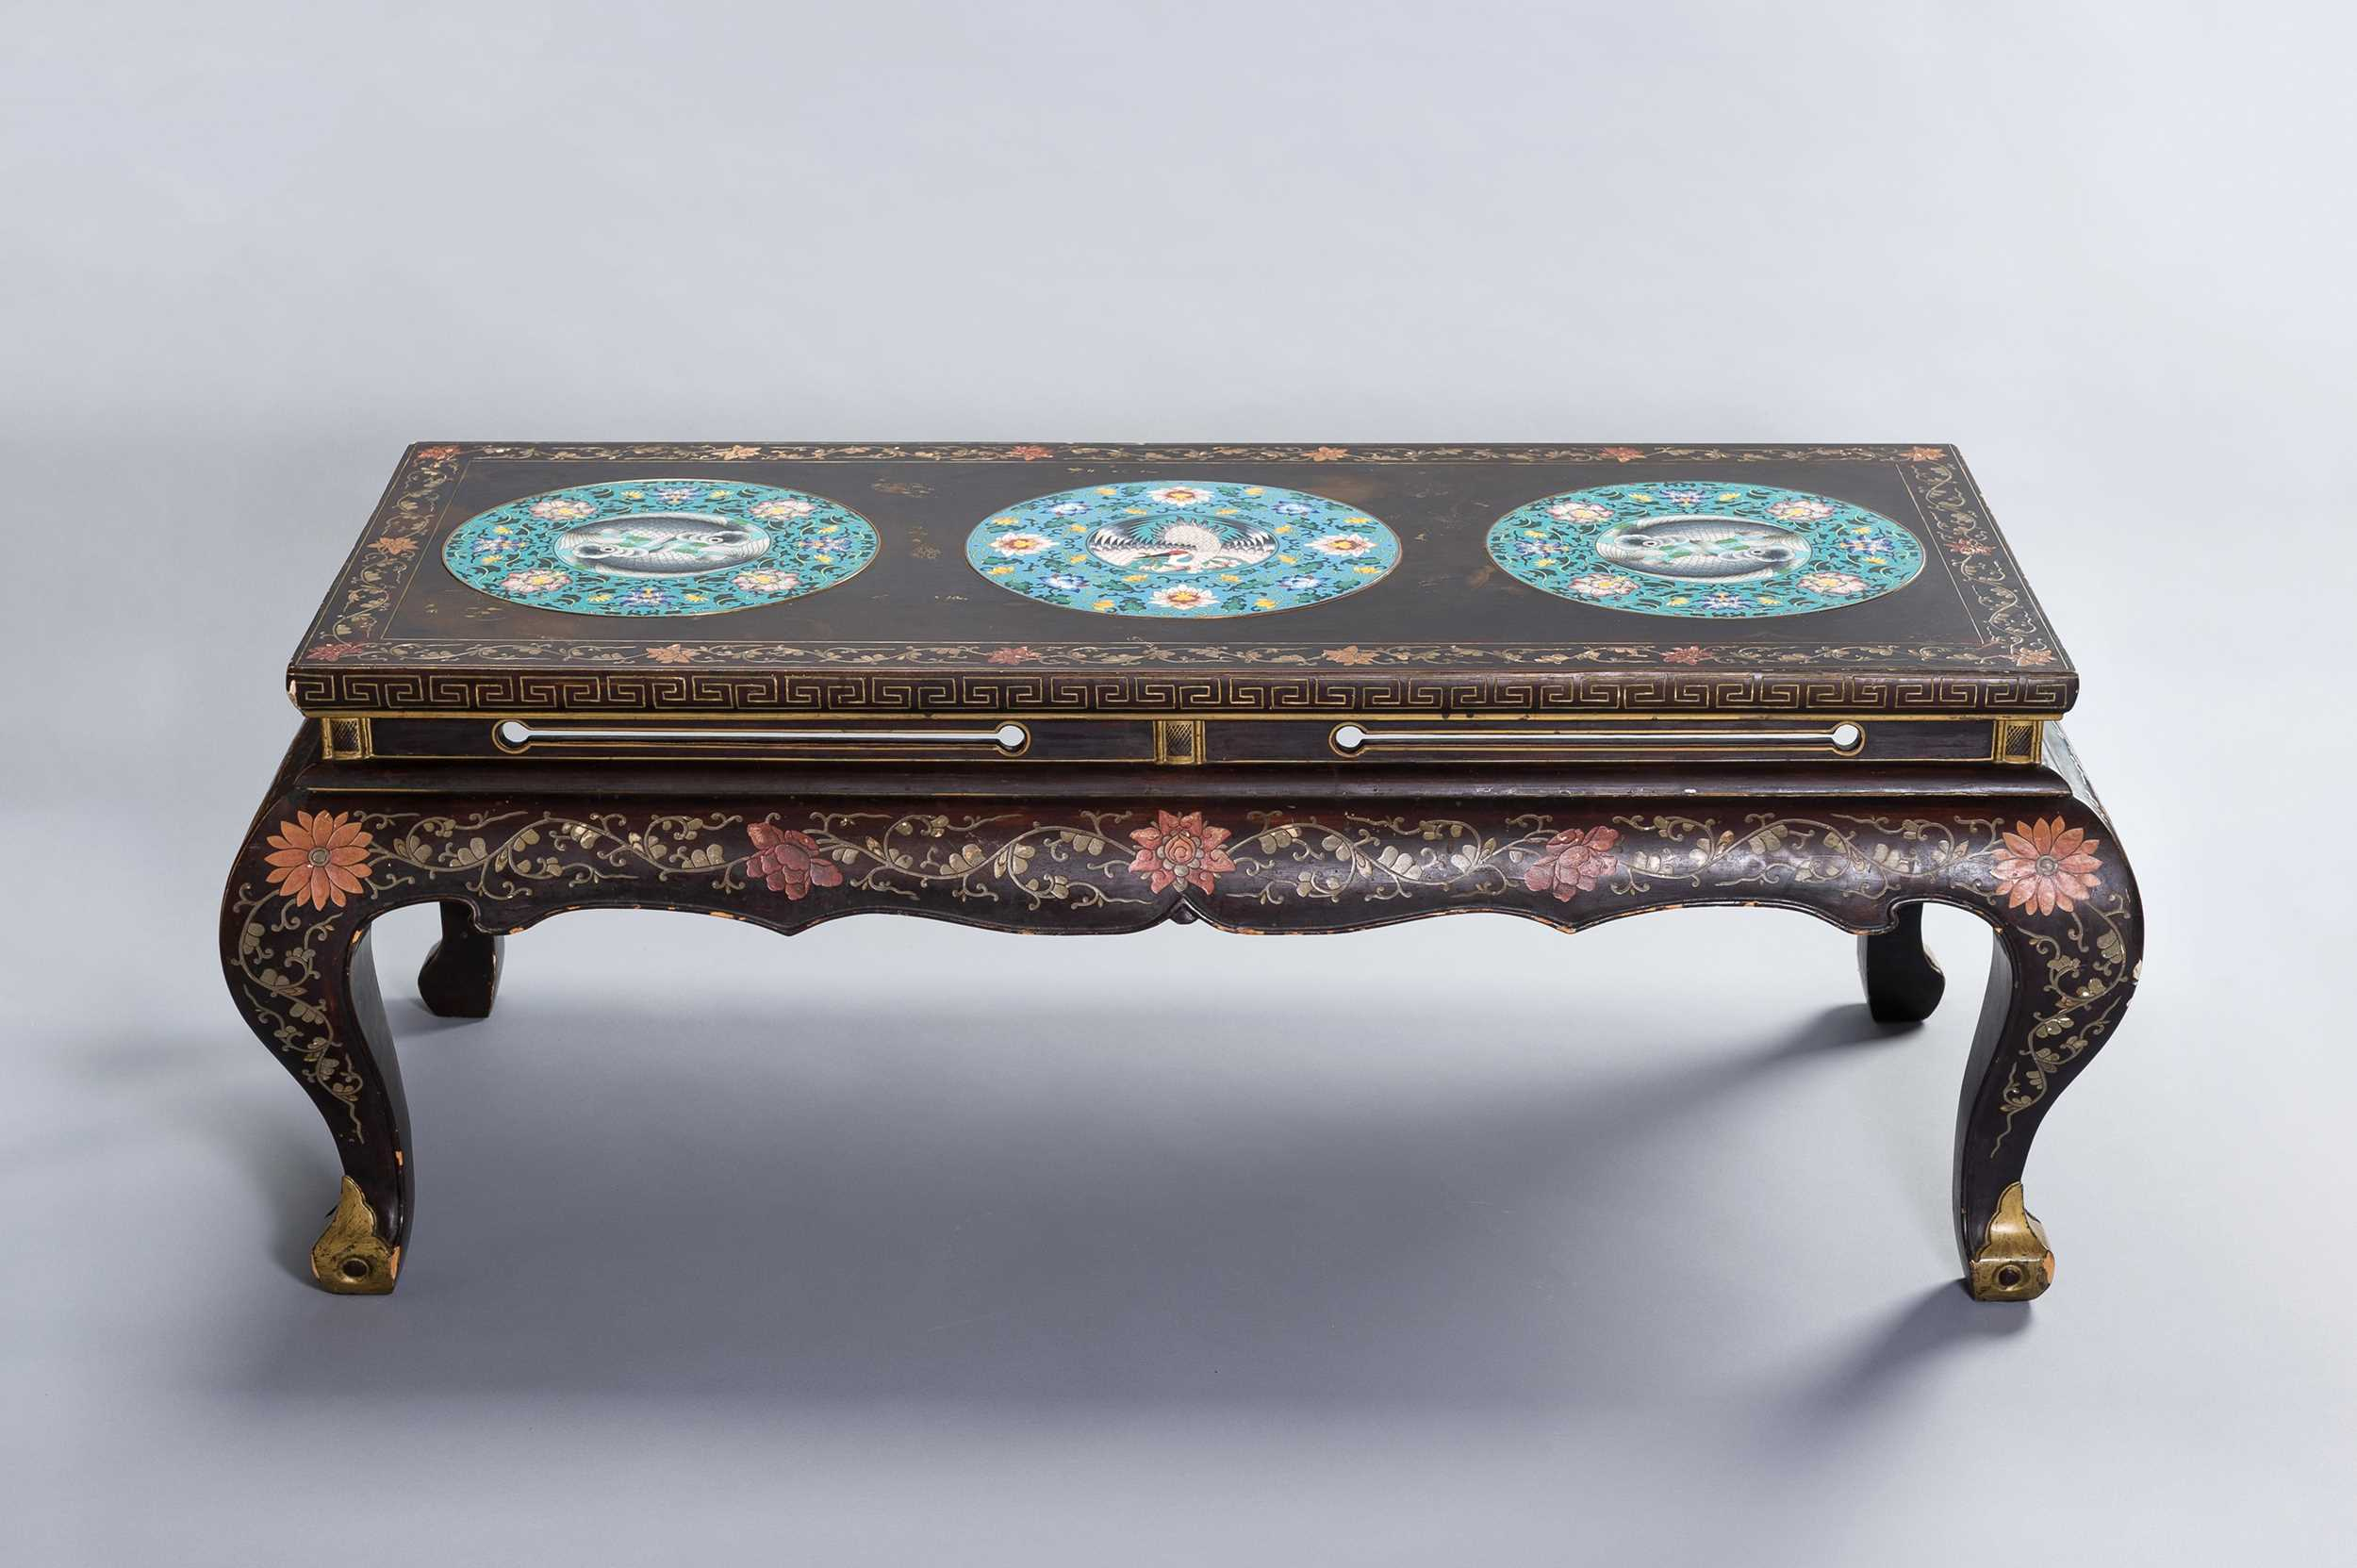 Lot 146 - A CHINESE LACQUERED COFFEE TABLE WITH CLOISONNÉ PLAQUES